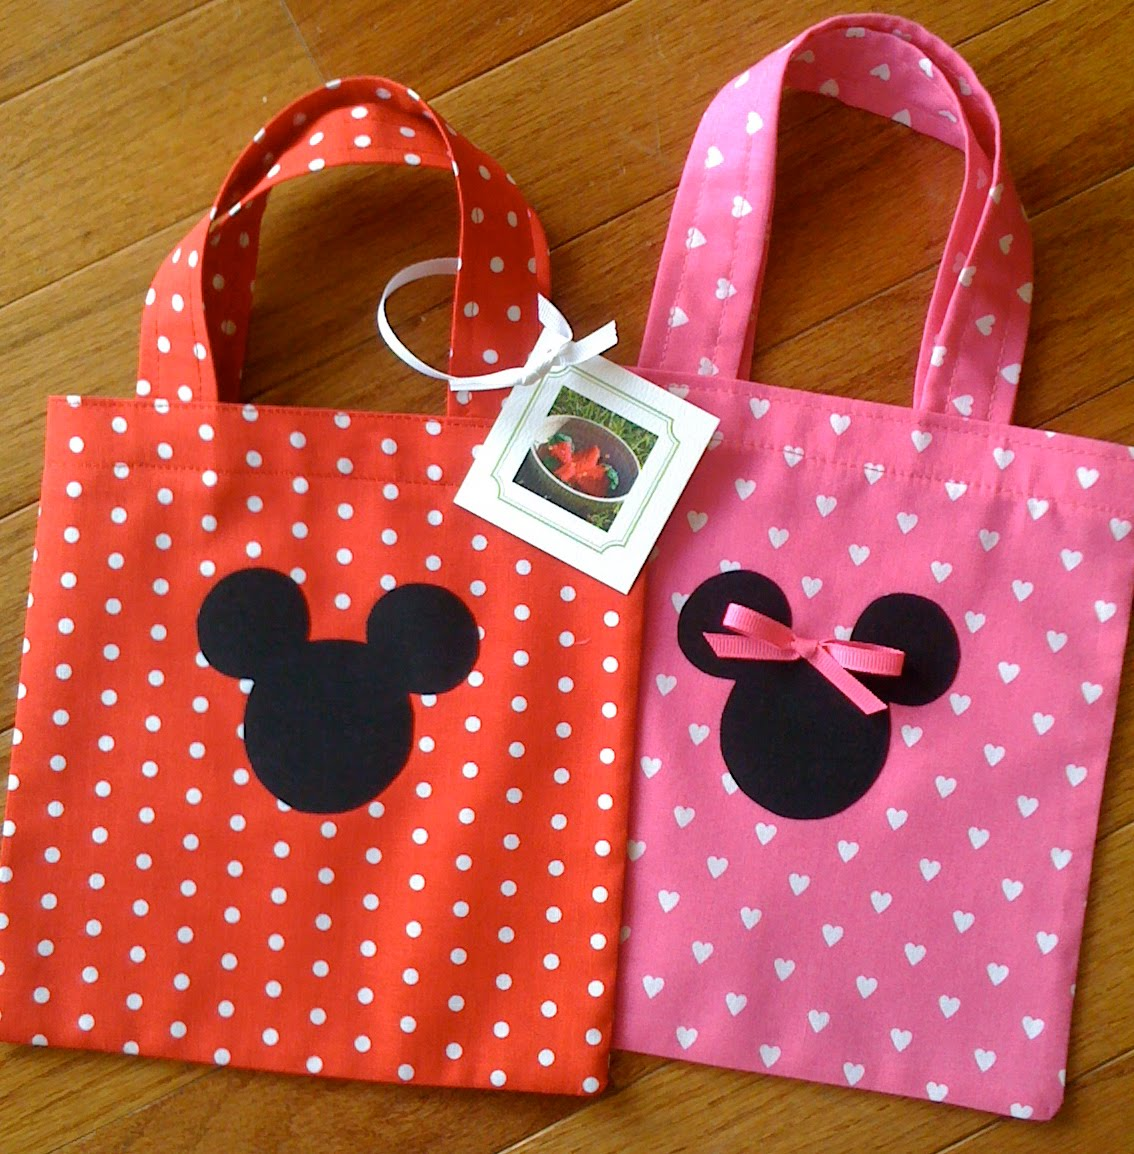 Just Finished Making 20 Mickey And Minnie Mouse Goody Bags For A Birthday Party The Idea Is To Have Candy Bar Each Guest Gets Fill Up His Or Her